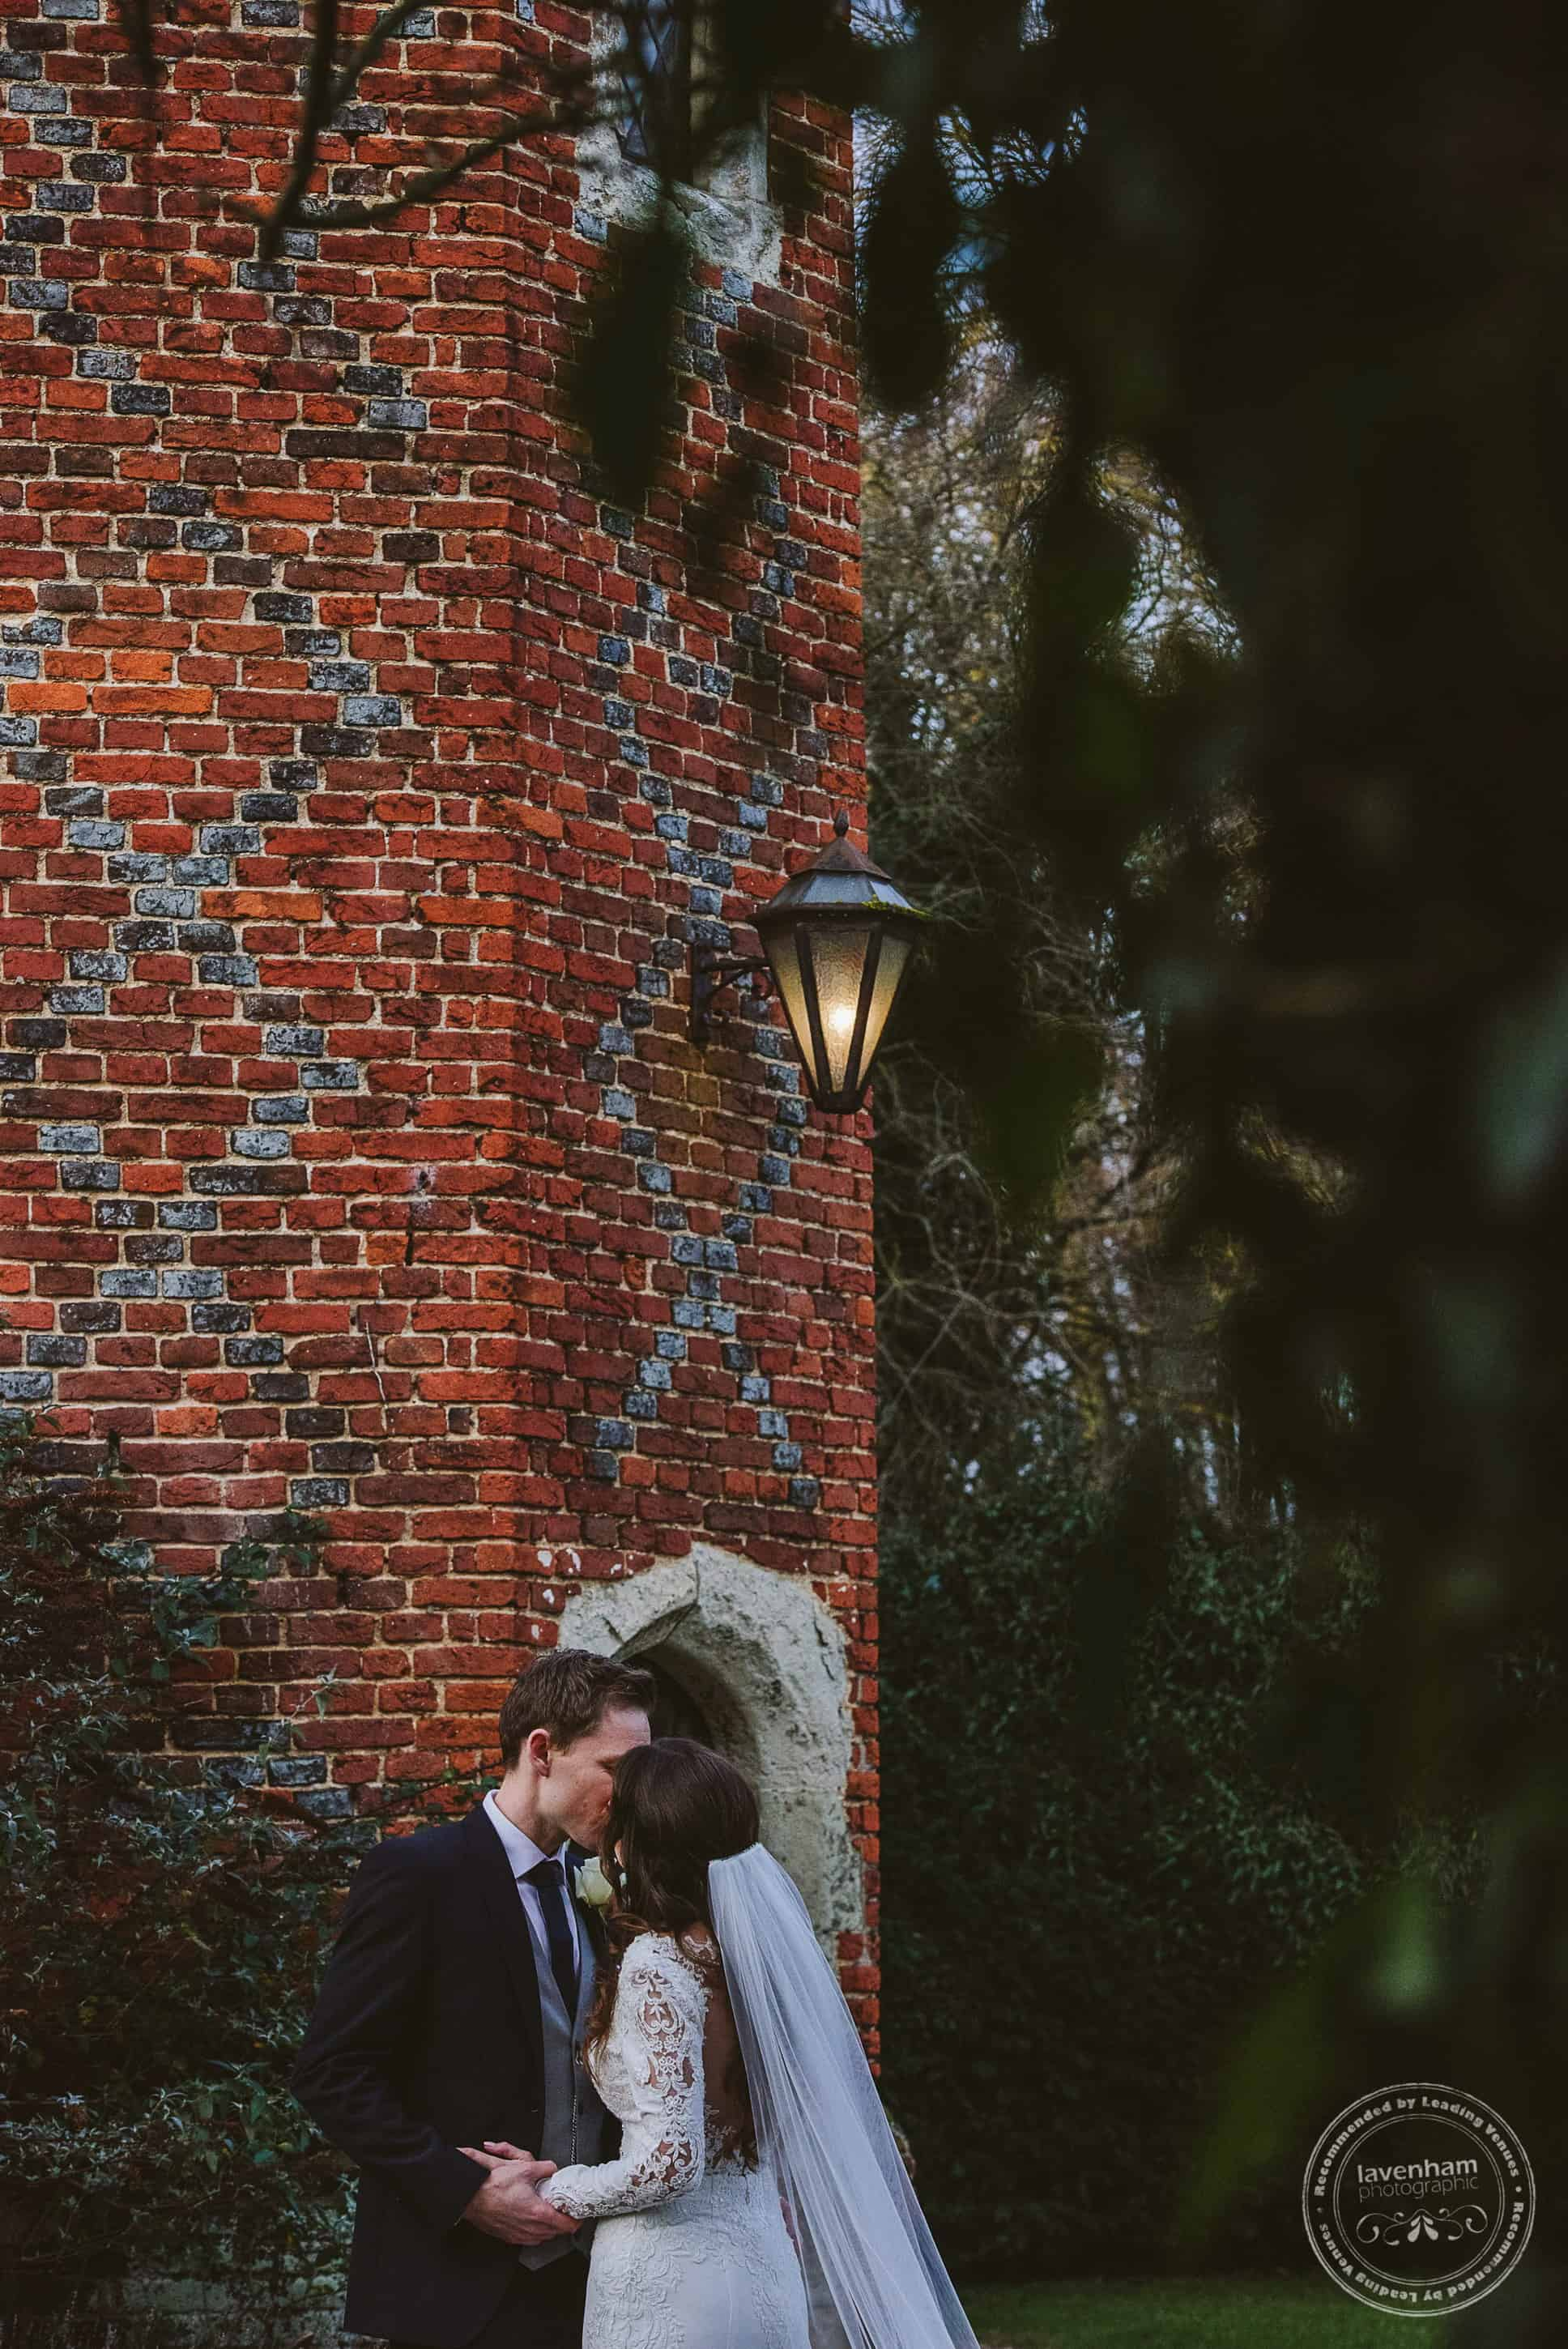 221219 Leez Priory Wedding Photoraphy 128